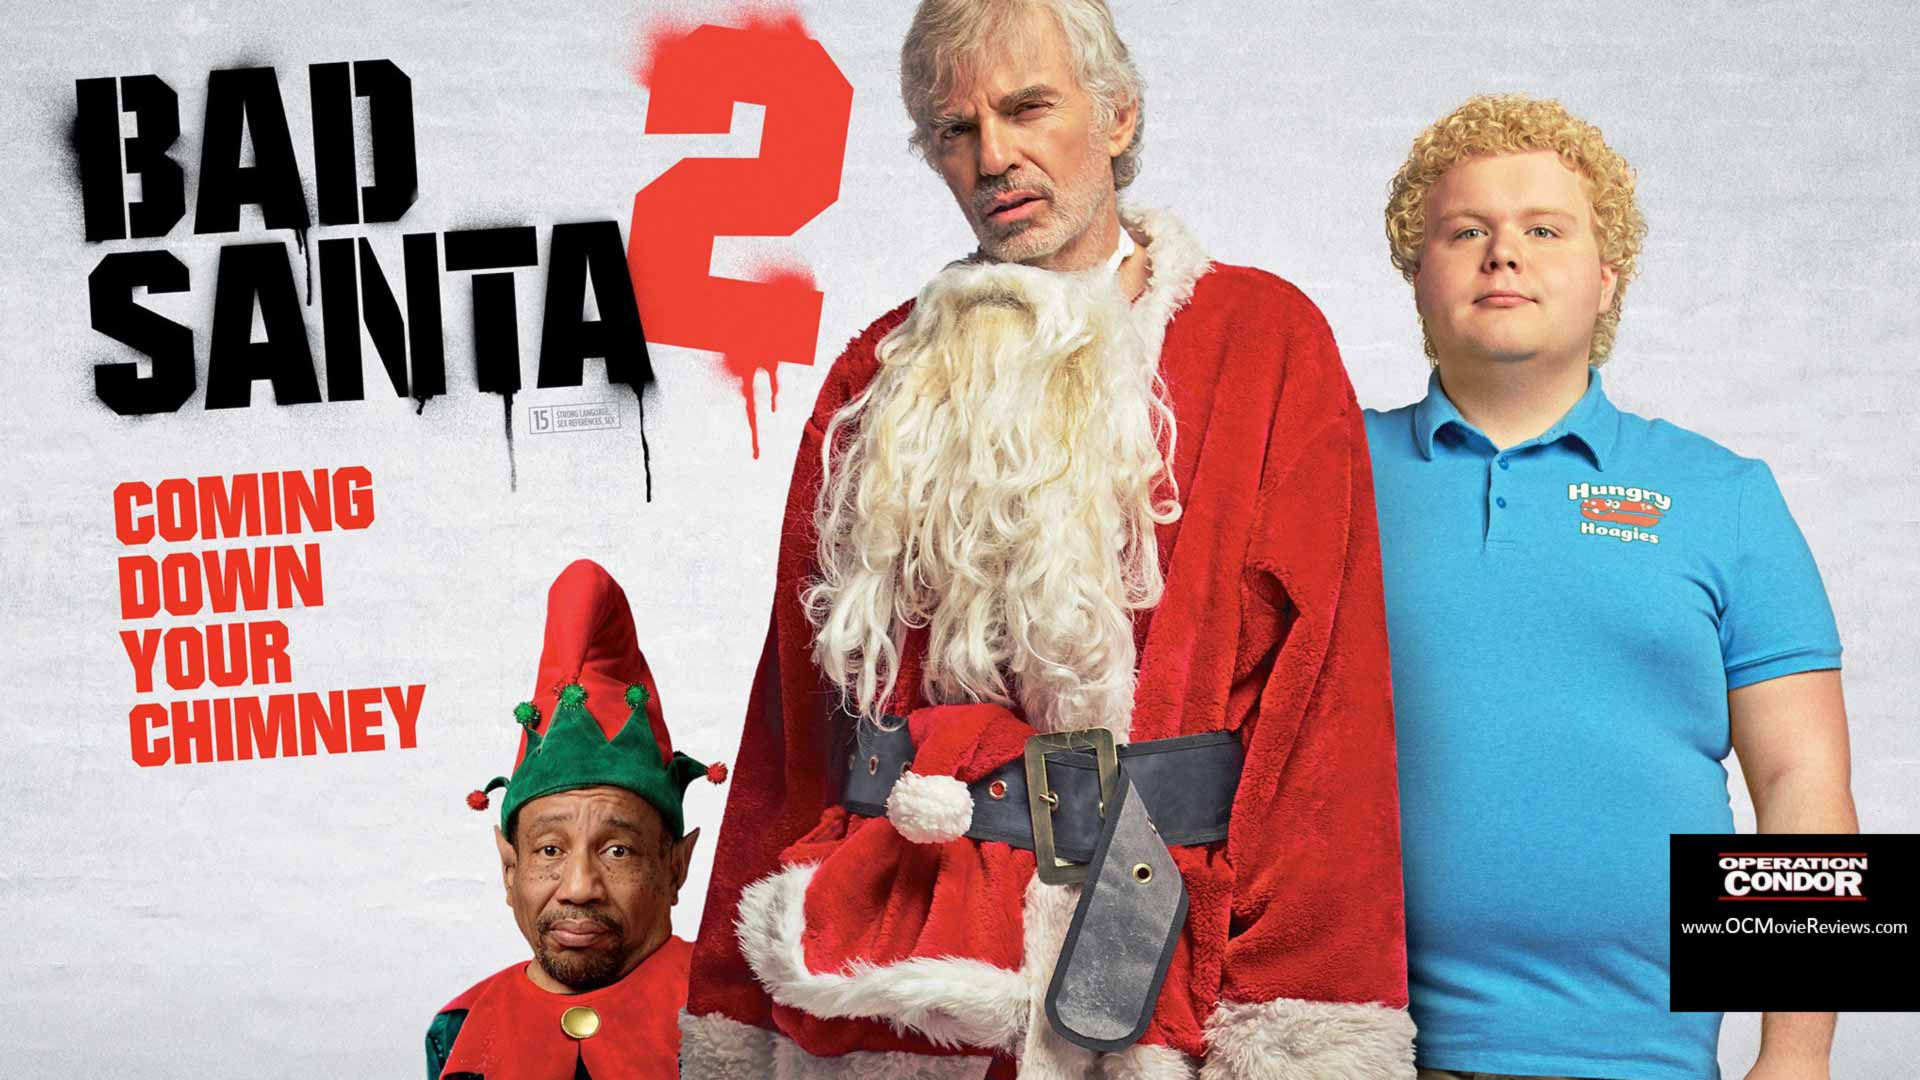 Bad Santa 2 Blu-ray Review – An F-Bomb Party In A Red Suit - OC Movie Reviews - Movie Reviews, Movie News, Documentary Reviews, Short Films, Short Film Reviews, Trailers, Movie Trailers, Interviews, film reviews, film news, hollywood, indie films, documentaries